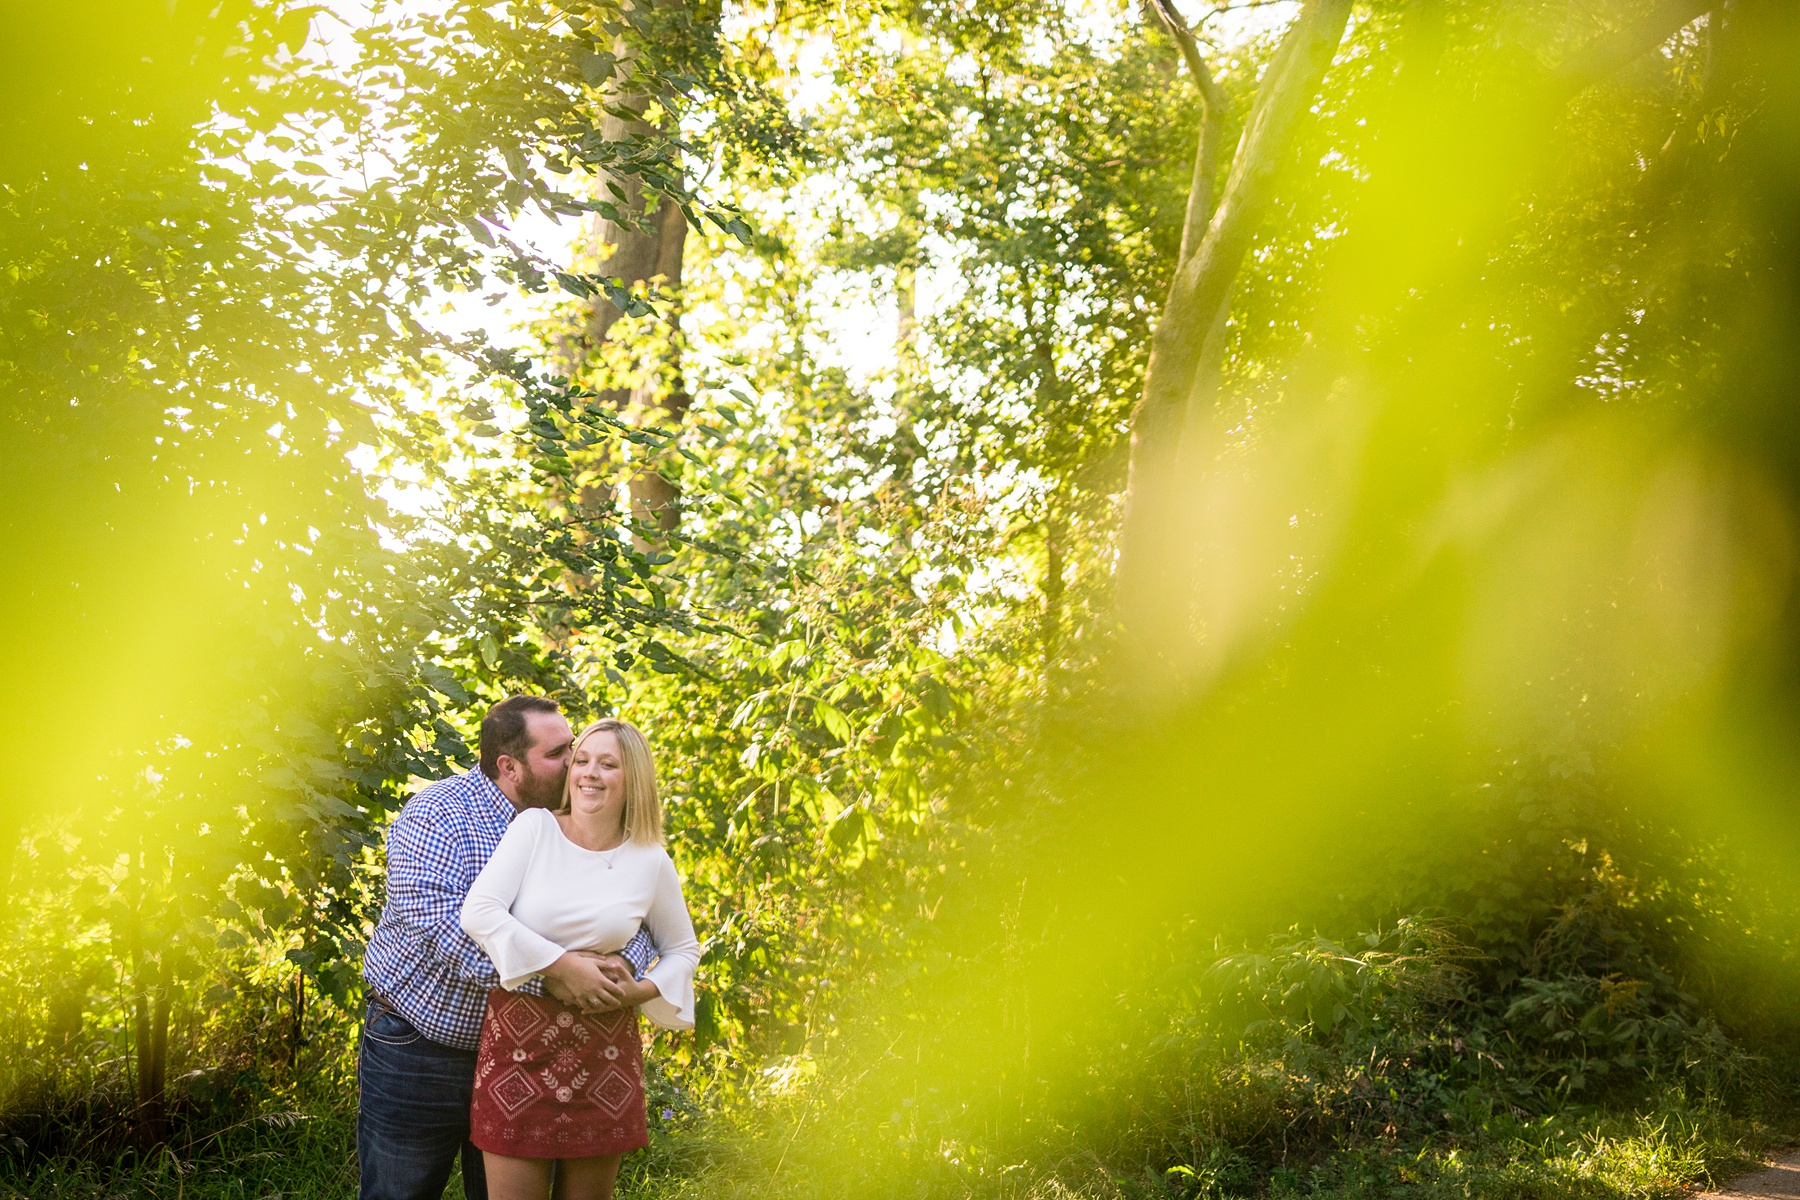 Brandon_Shafer_Photography_Megan_Nate_West_Michigan_Engagement_Photos_0004.jpg